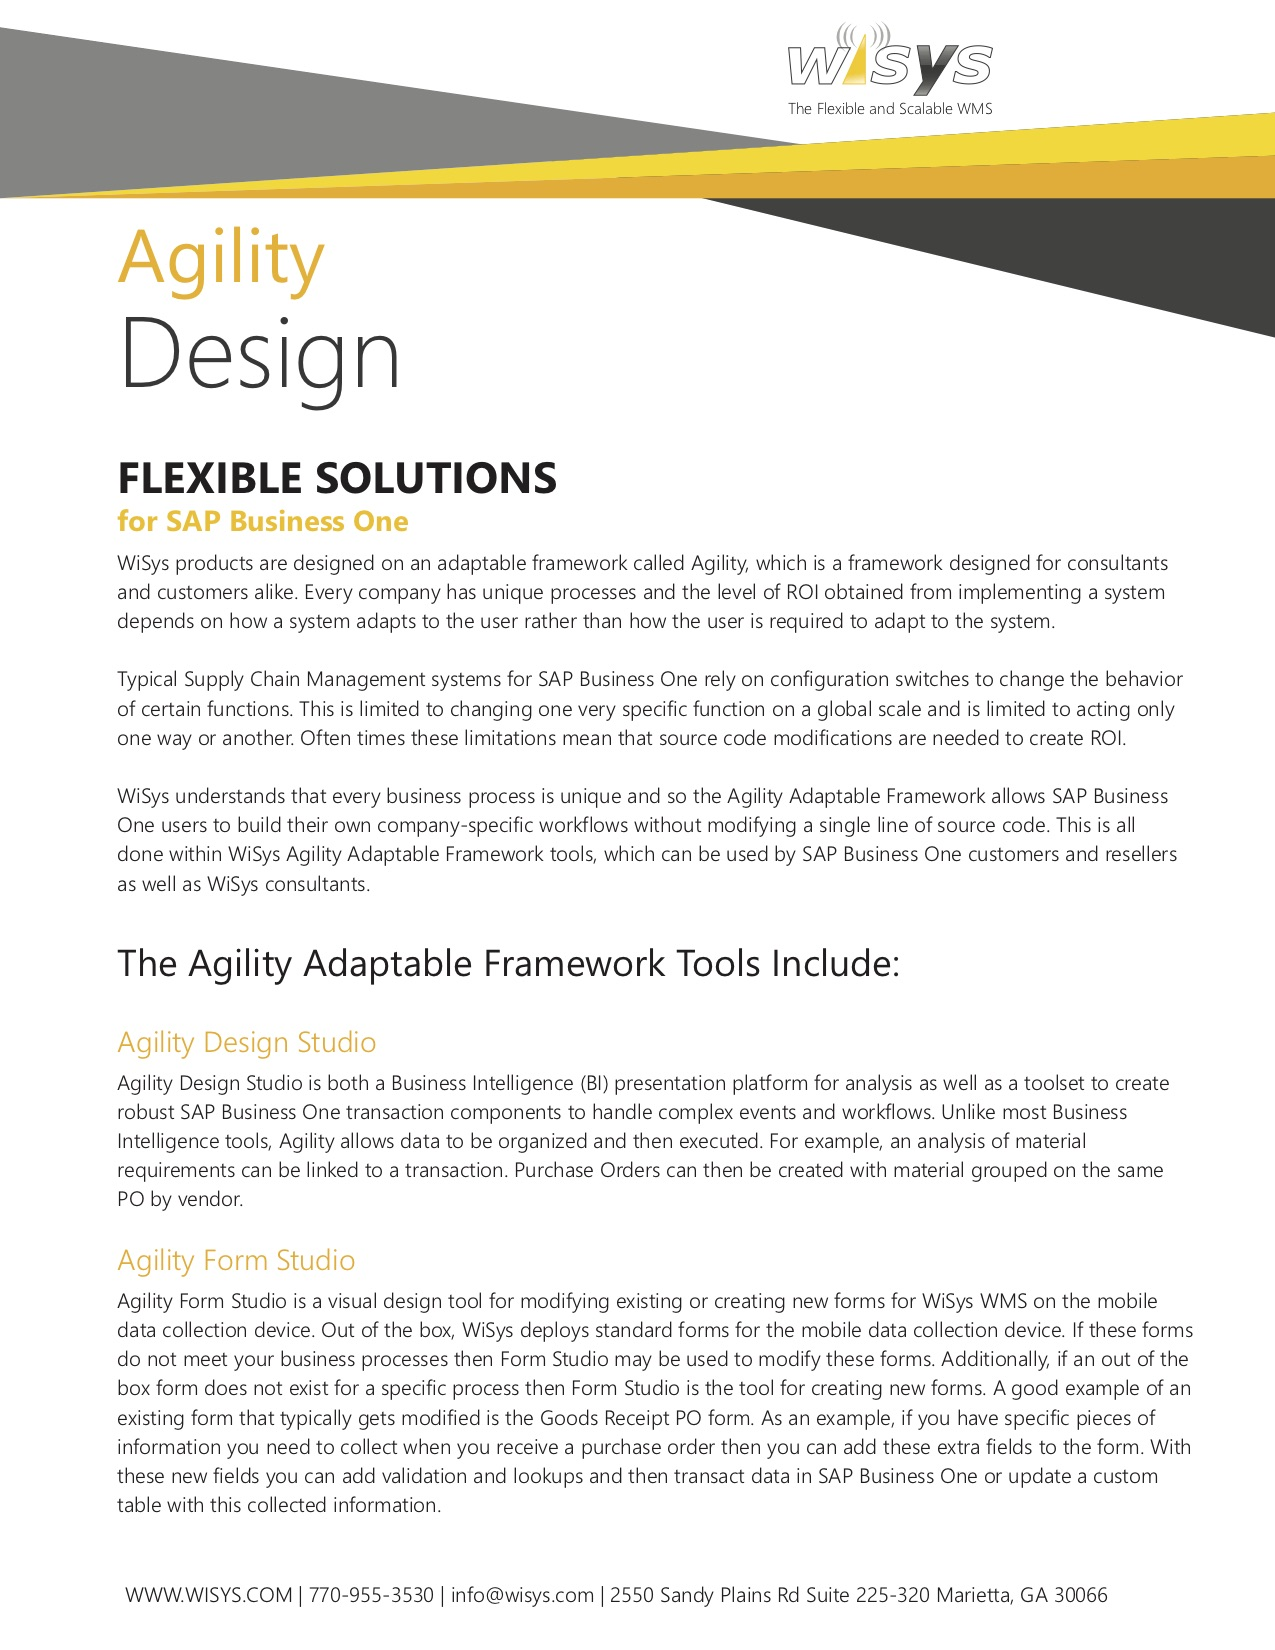 Agility-Design-Brochure-sap-business-one